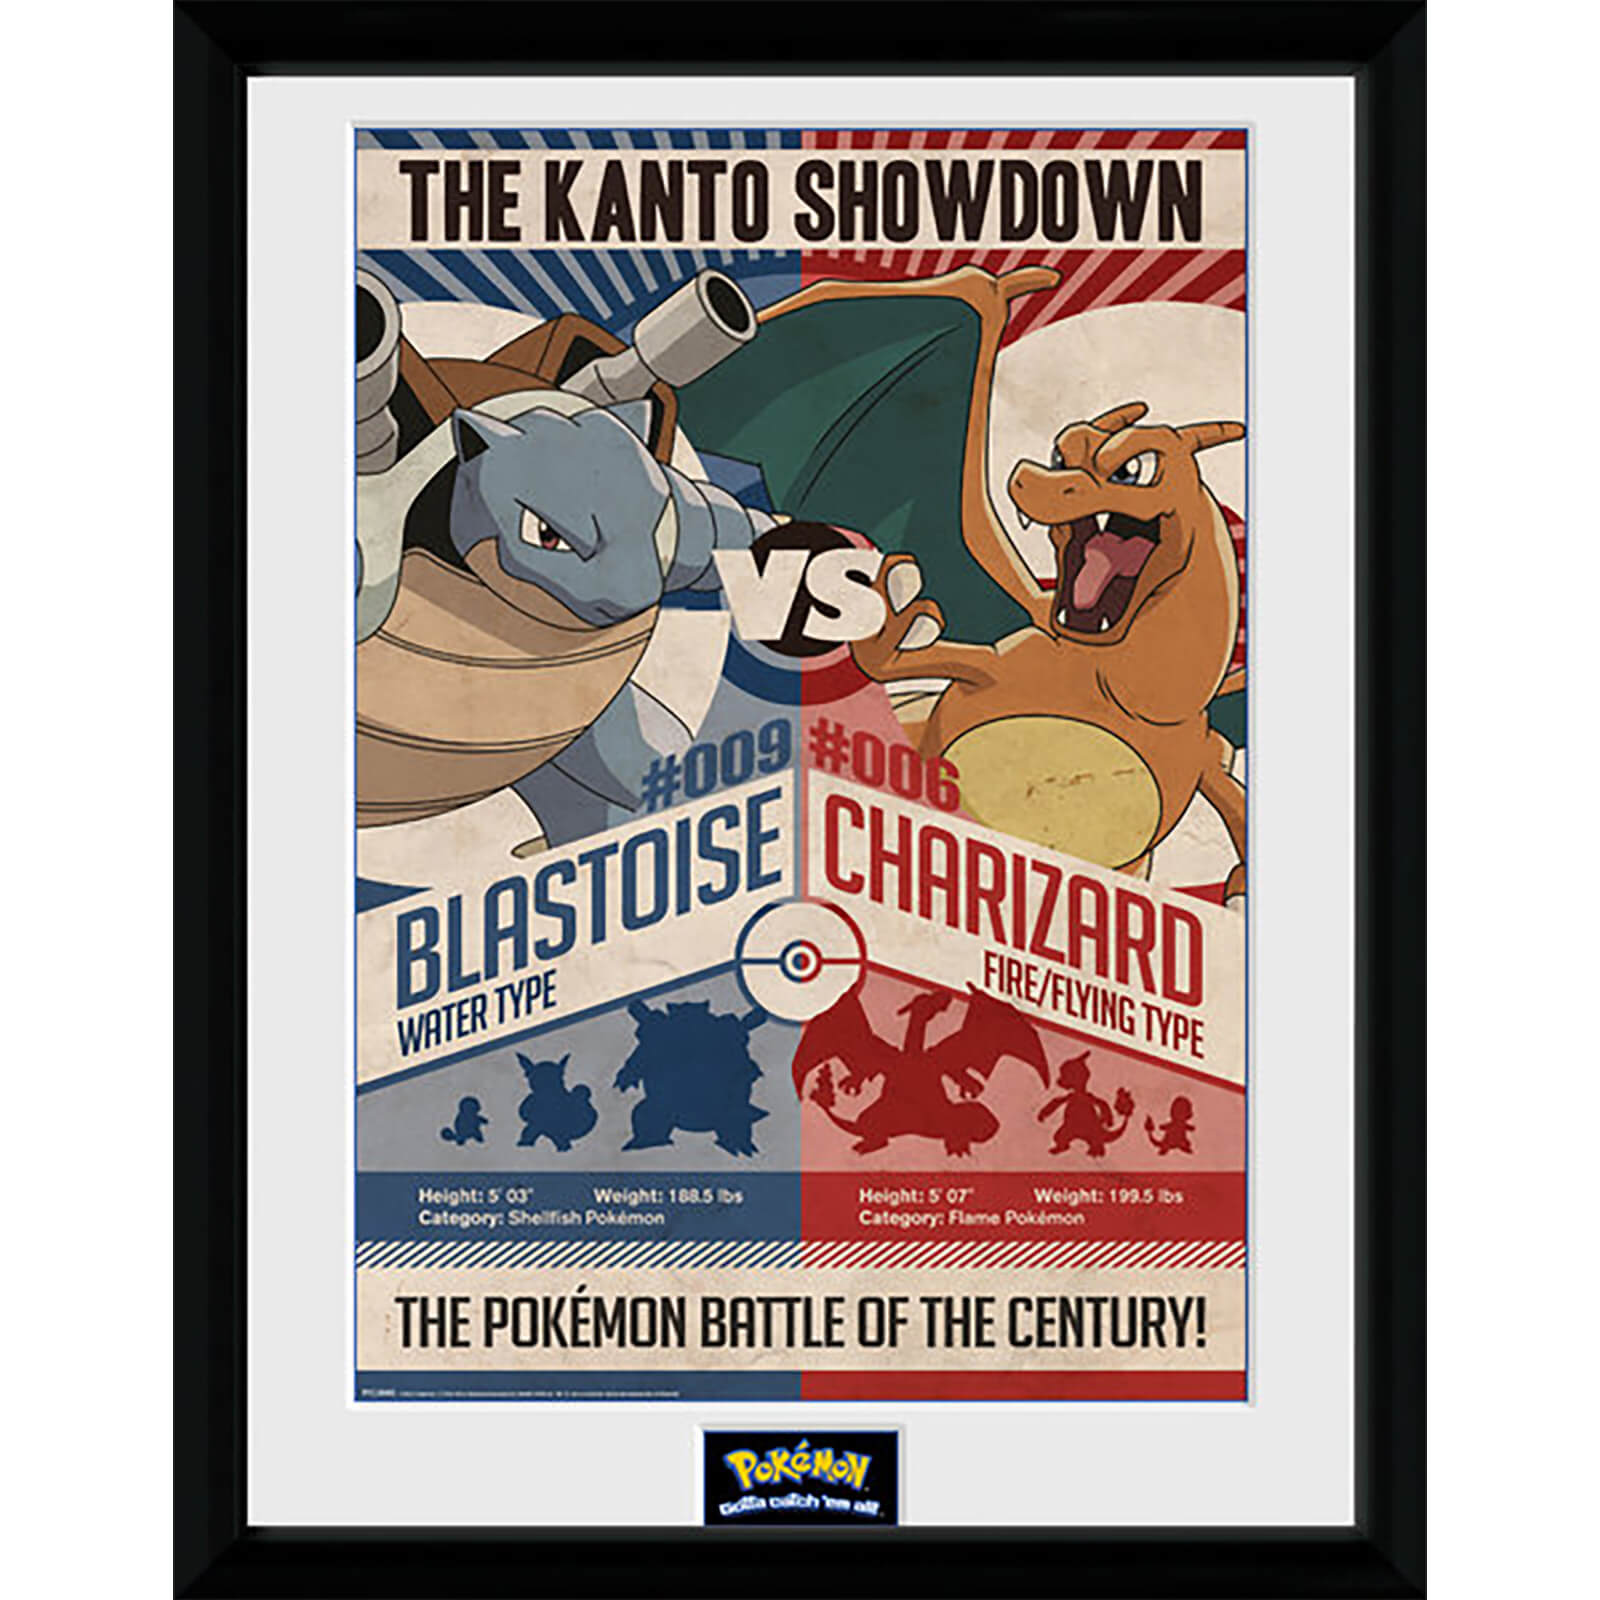 Pokémon Red V Blue - 16 x 12 Inches Framed Photograph